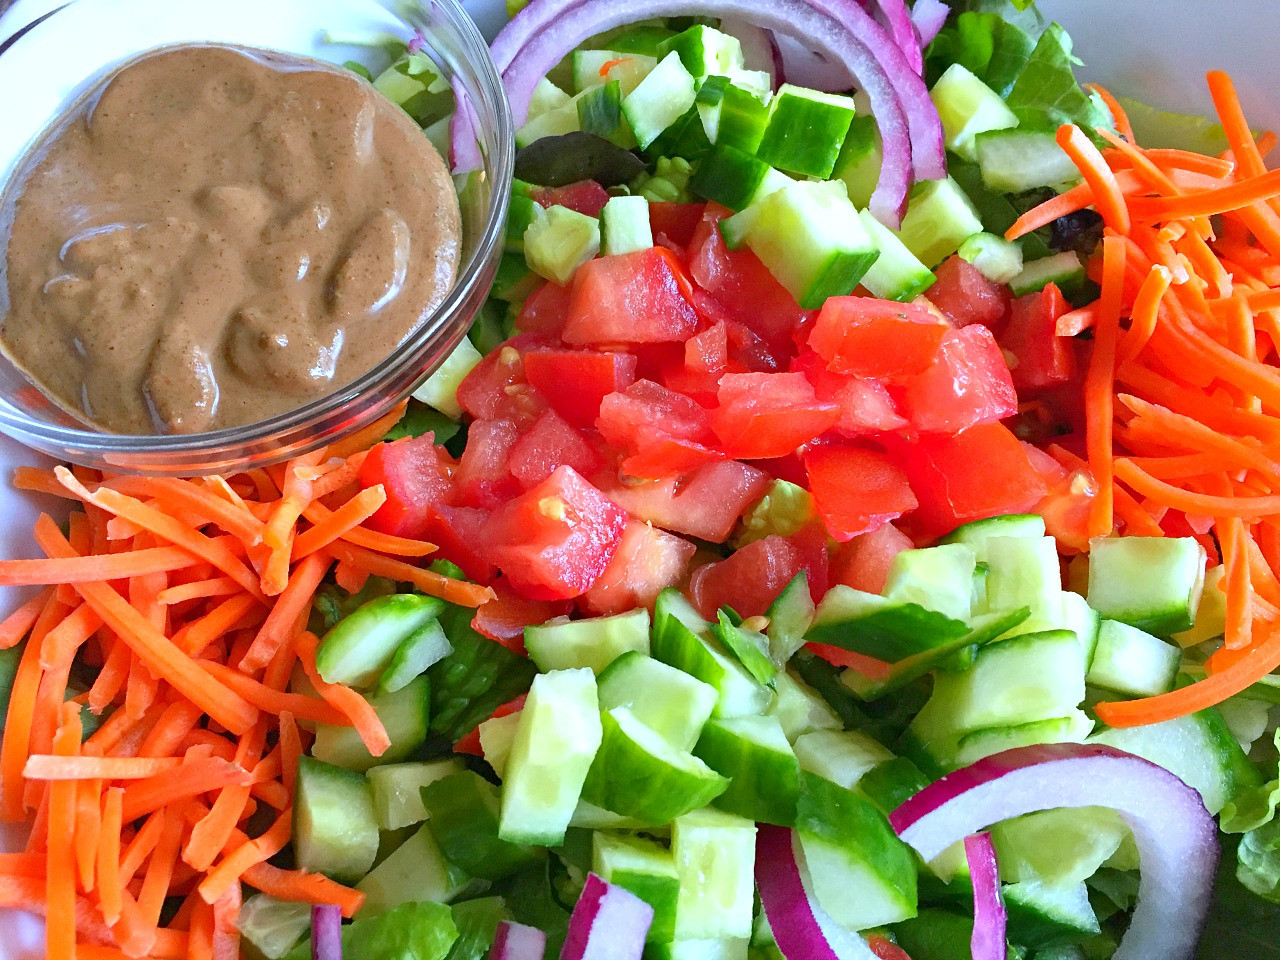 Heart Healthy Salad Dressing Recipes  Delicious Heart Healthy Salad with a Creamy Balsamic